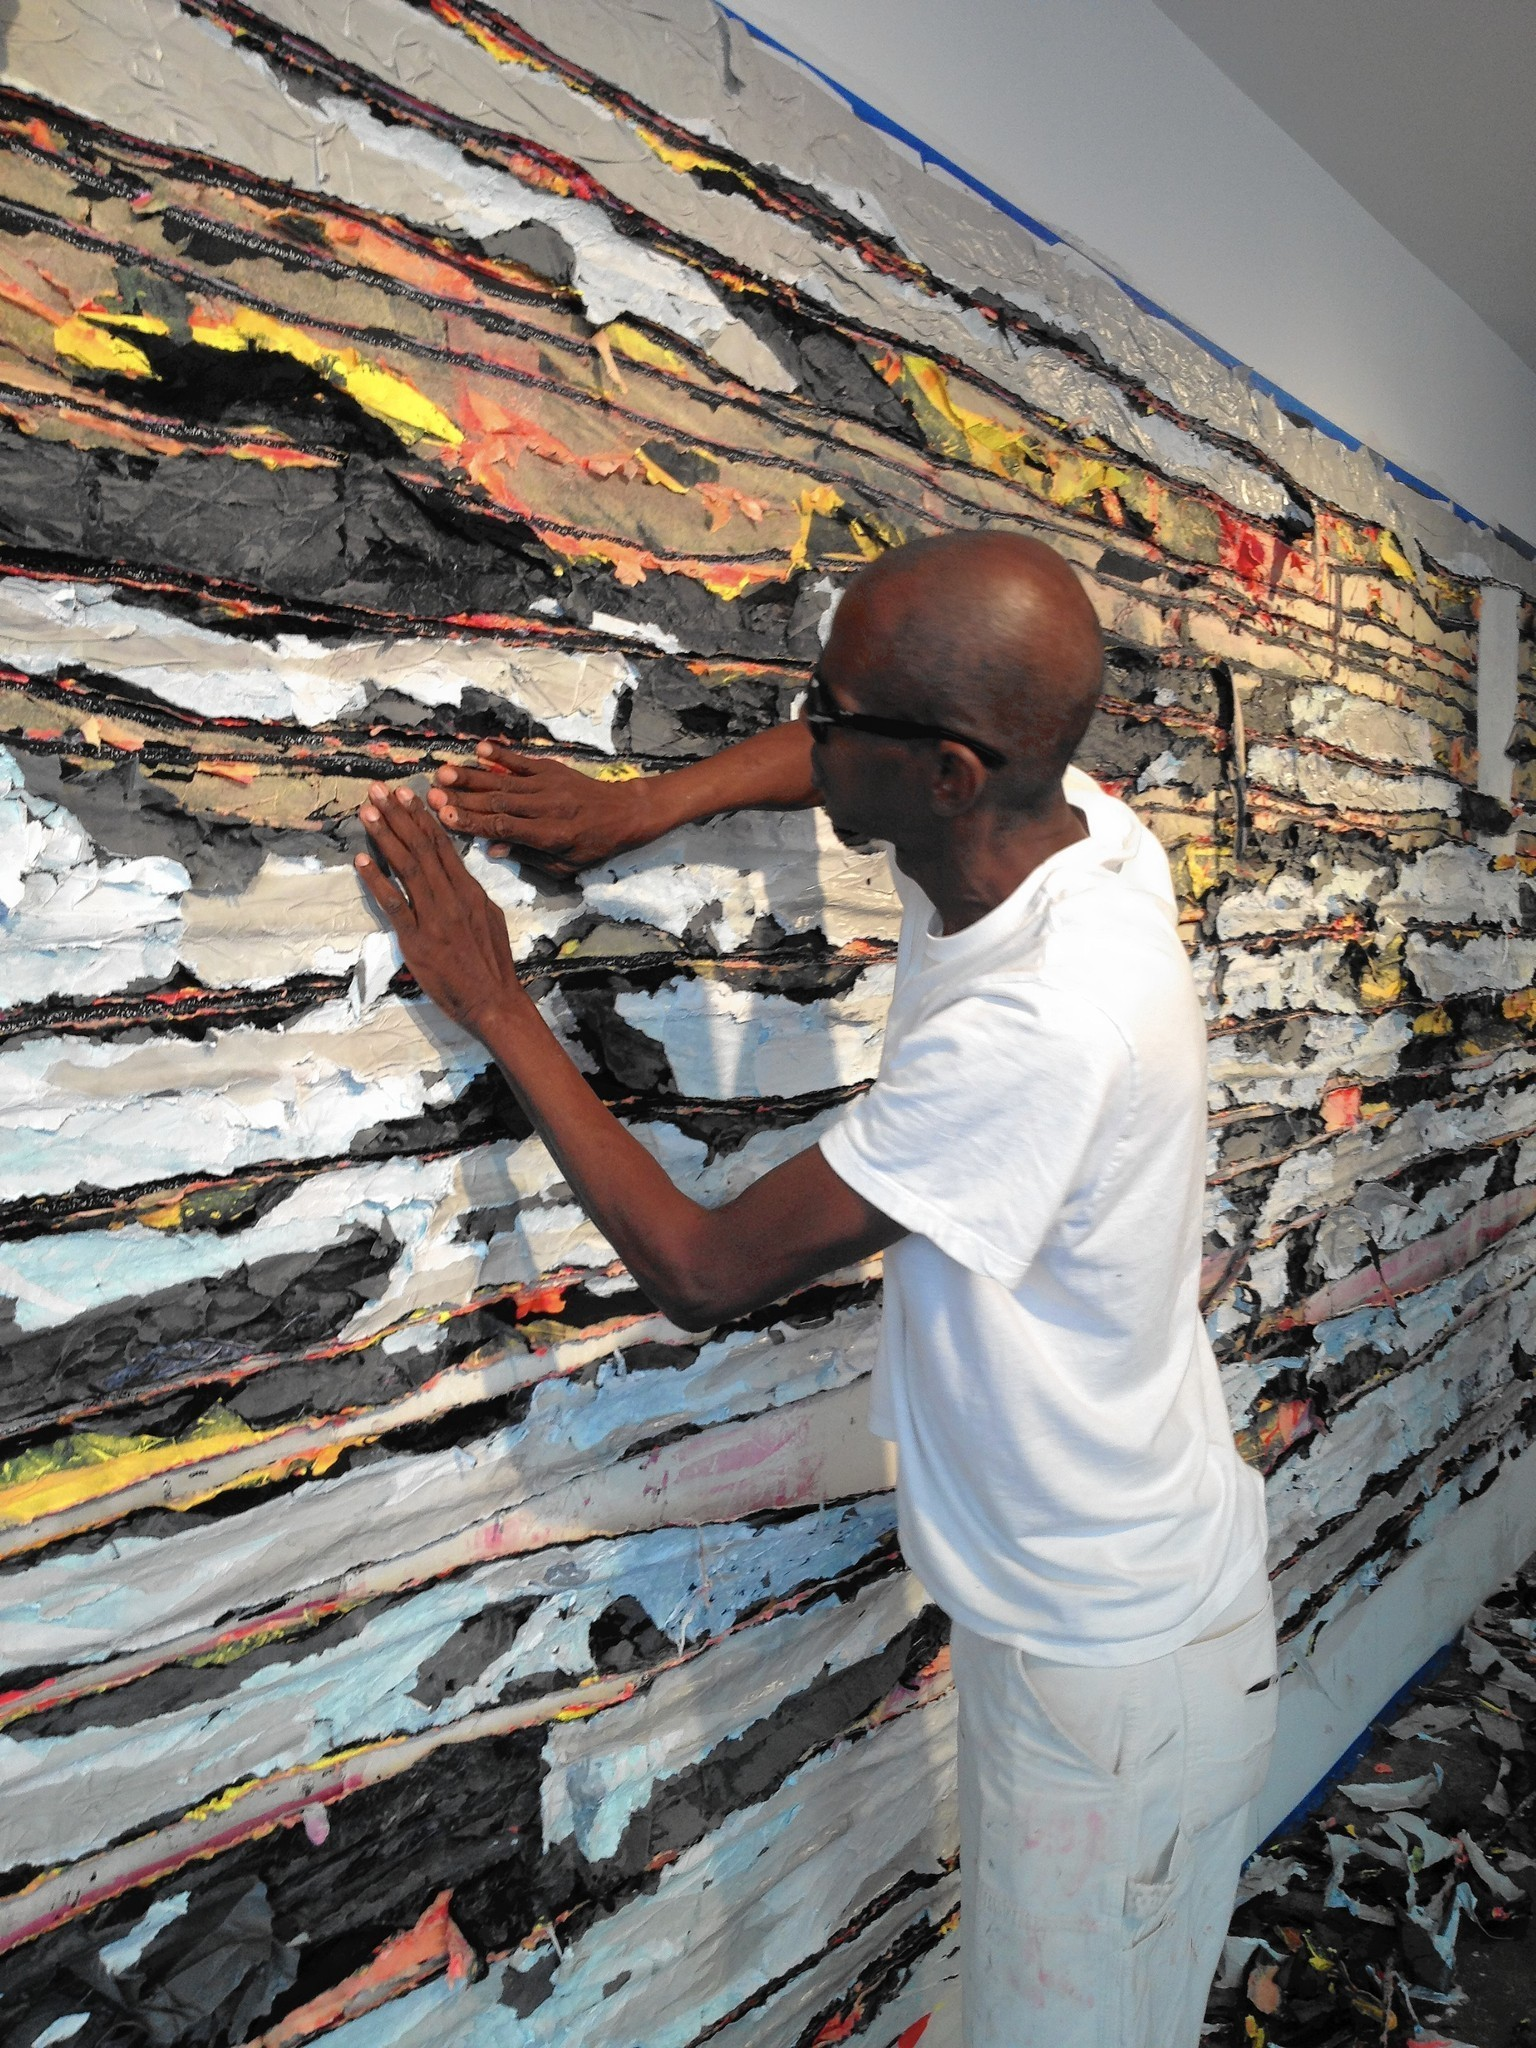 Artist Creates Site-Specific 'Pull Painting' At Atheneum